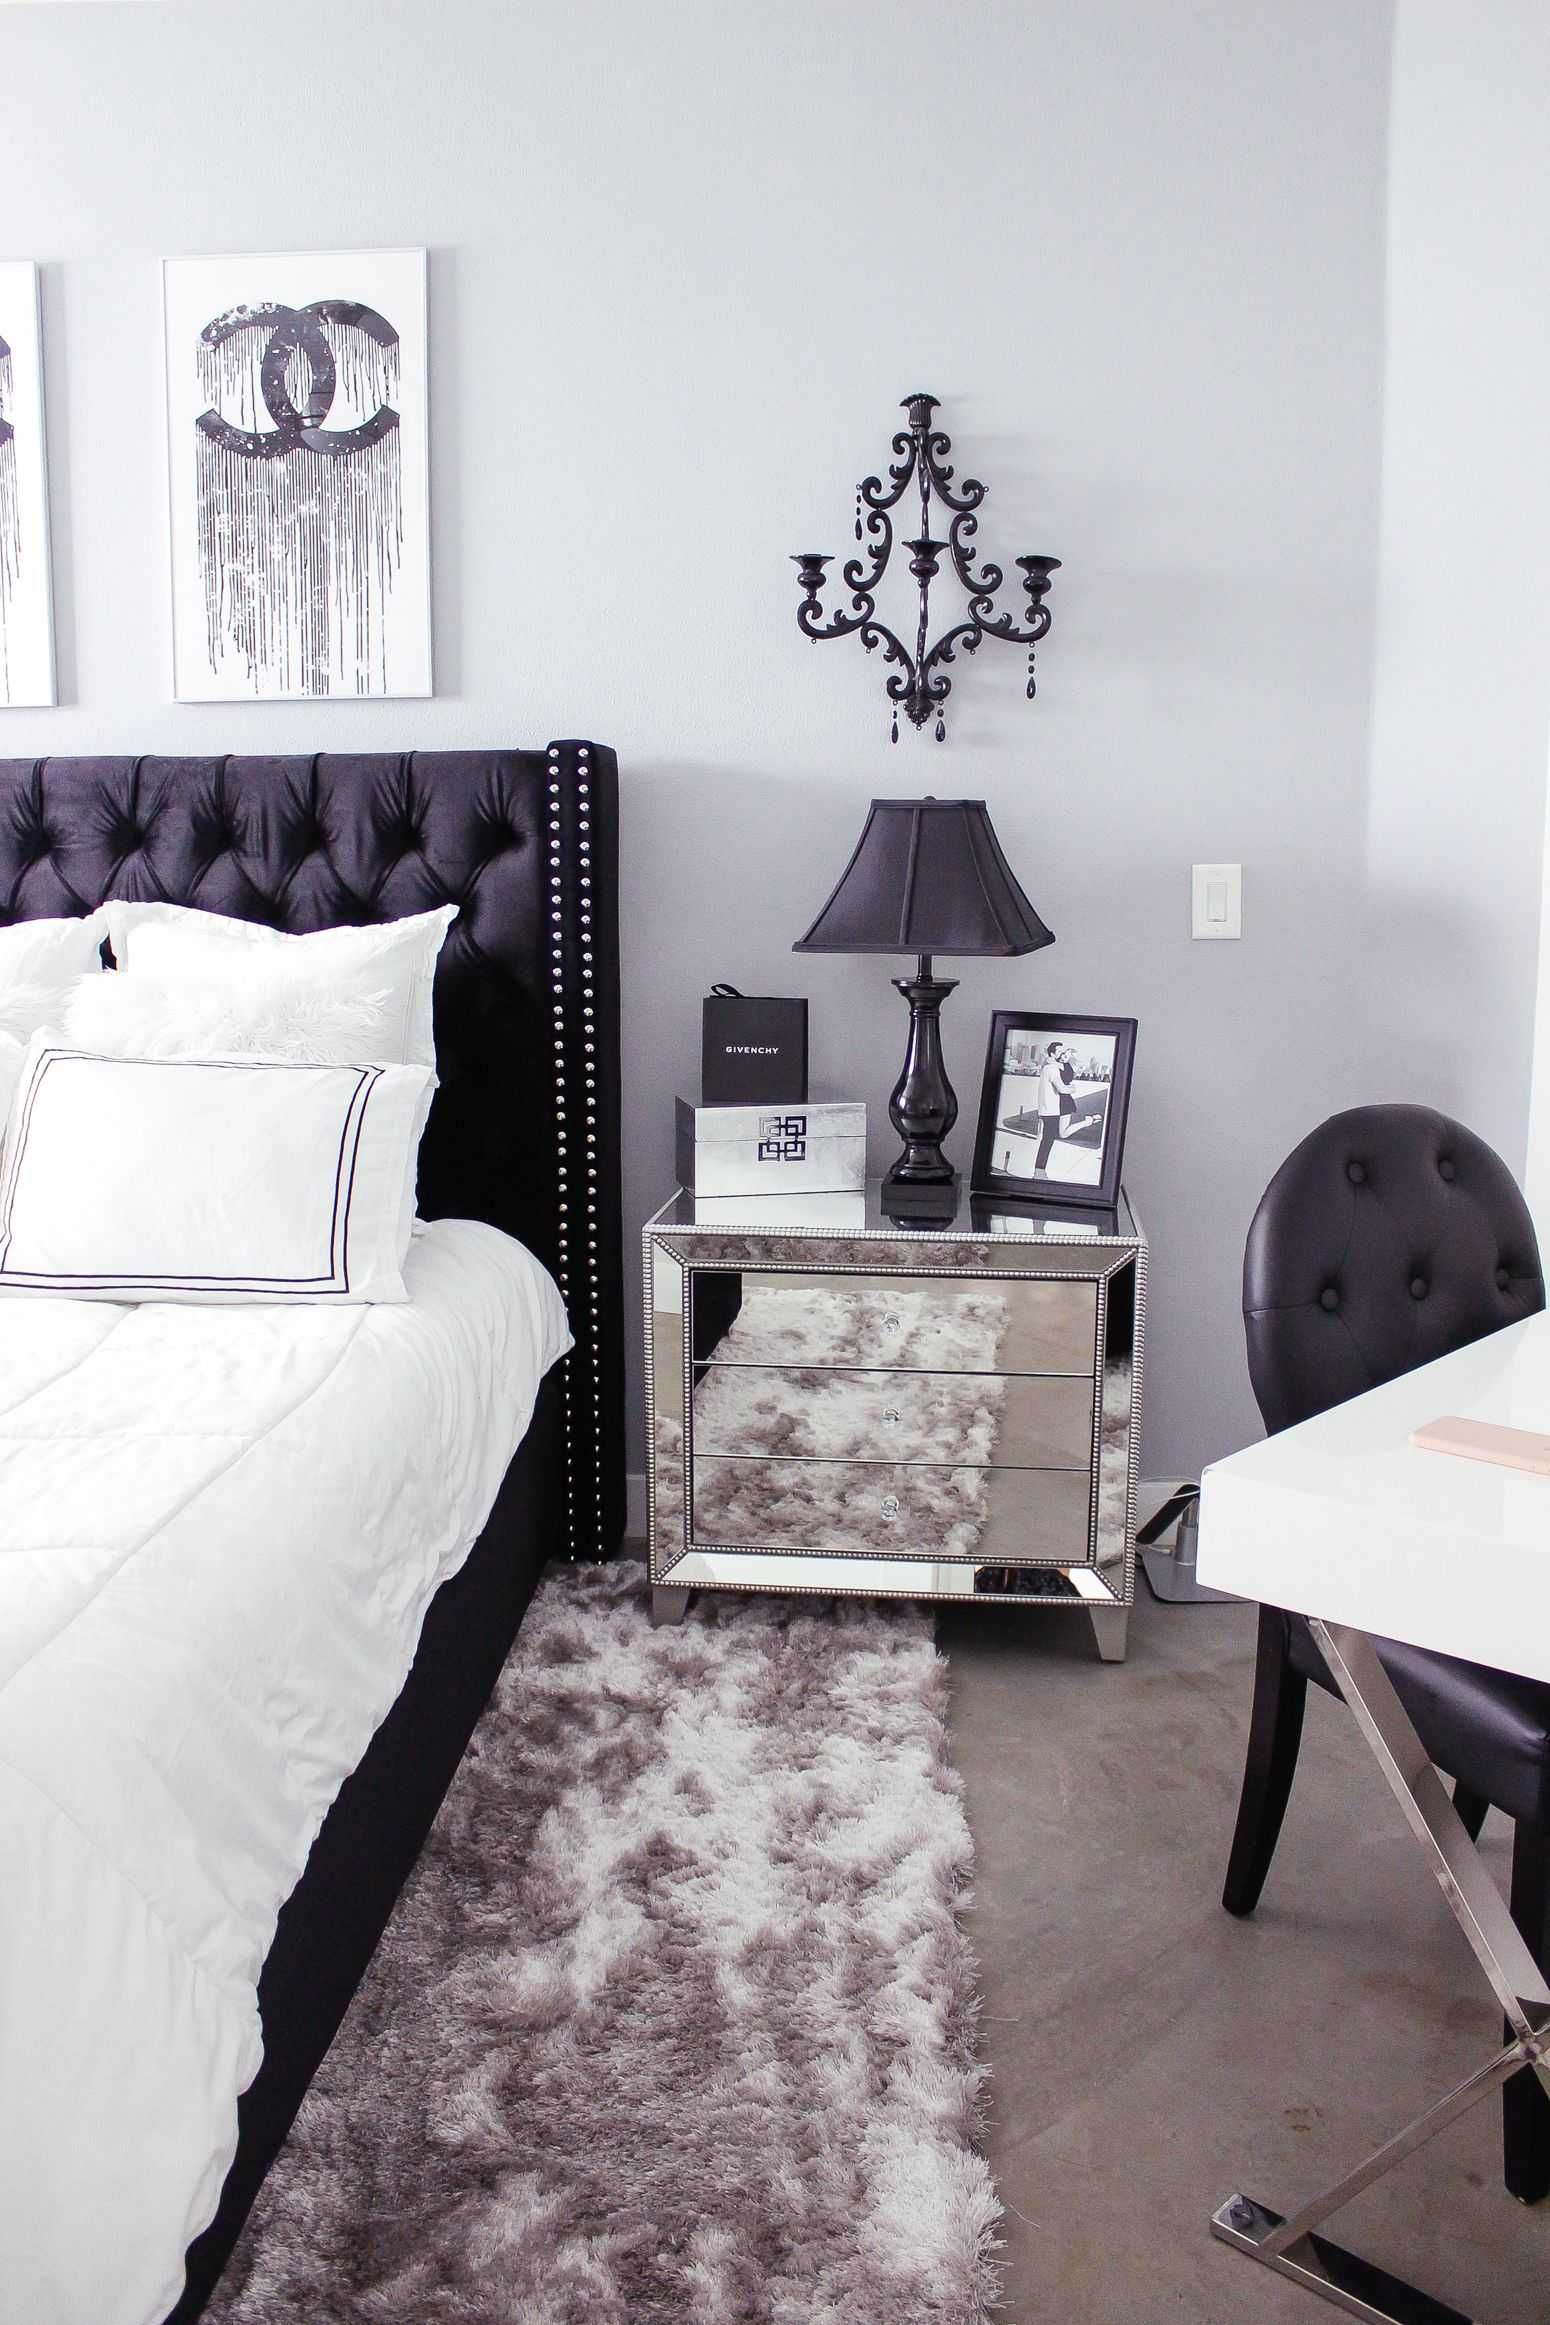 Country Chic Rustic Glam Bedroom Awesome Country Chic Rustic Glam Bedroom French Country Living White Bedroom Decor Glam Bedroom Decor Black White Bedrooms